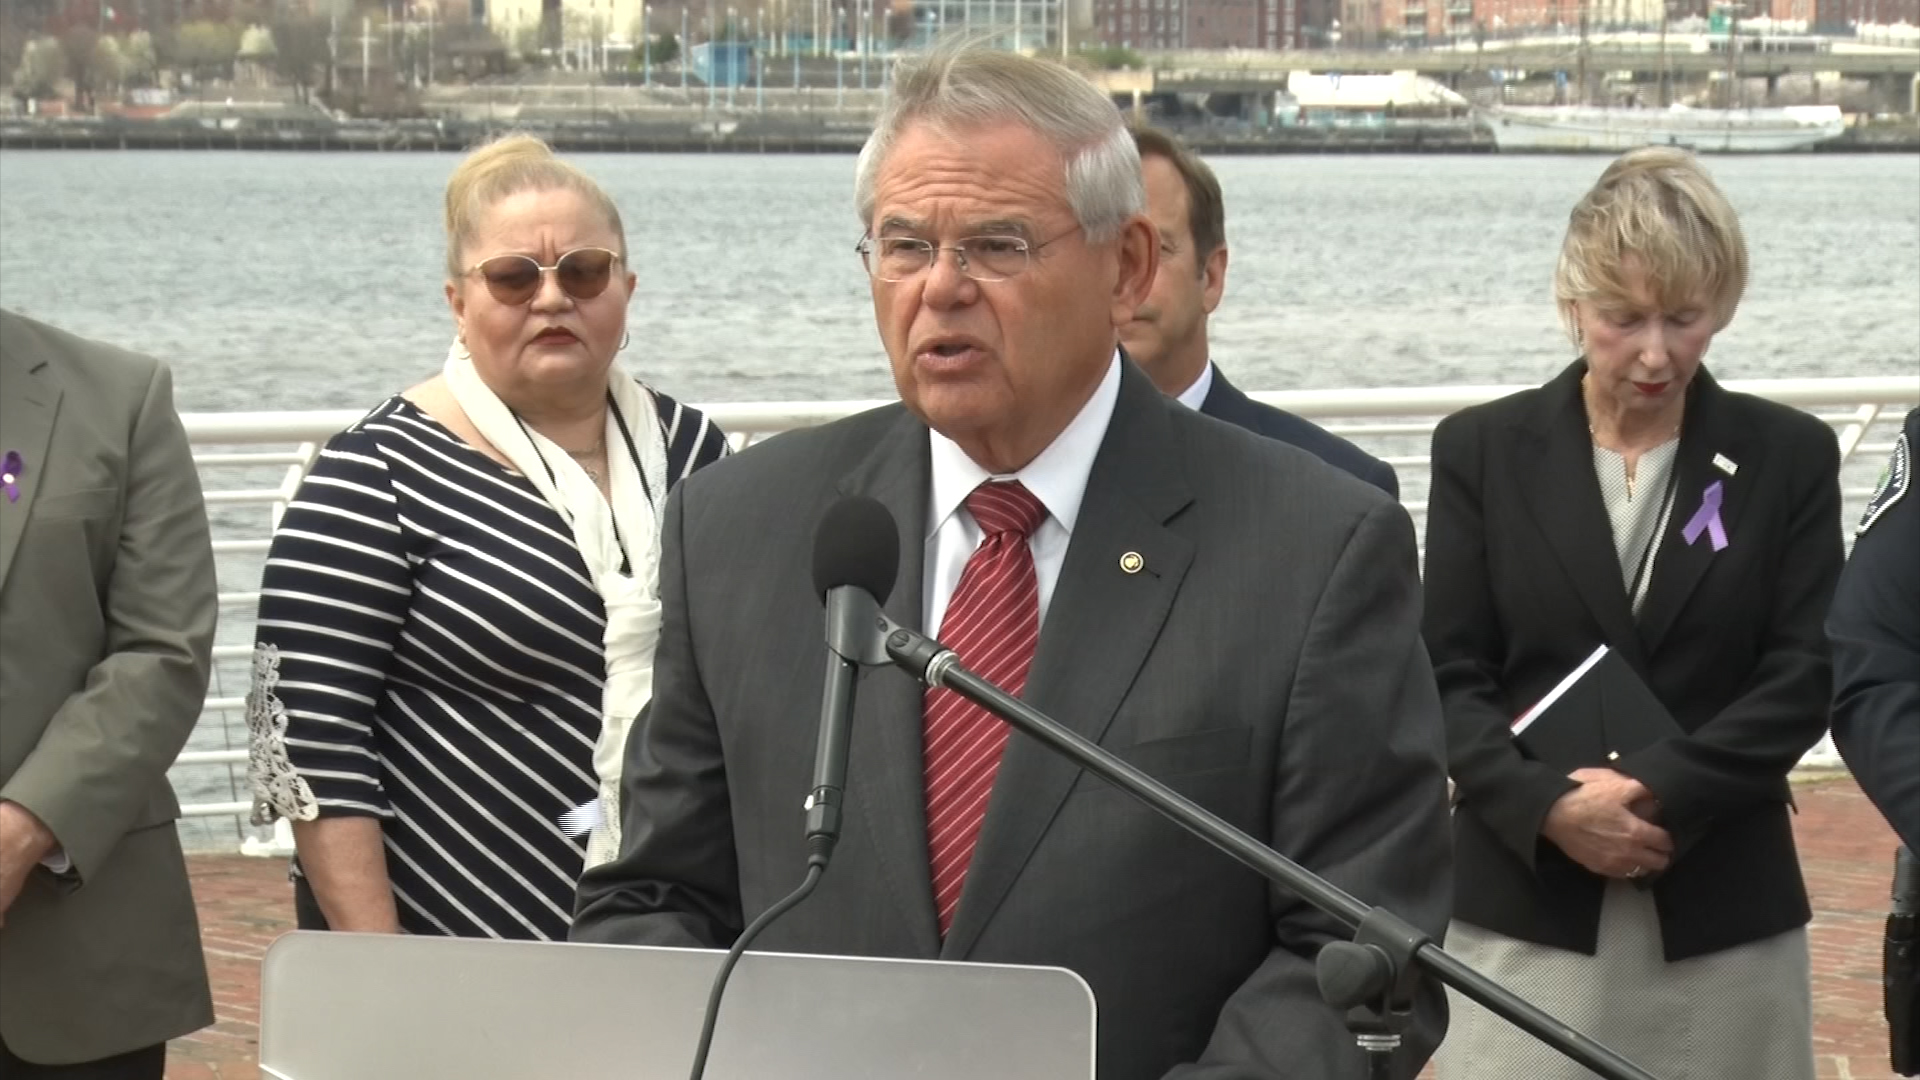 Menendez introduces bill to crack down on fentanyl trafficking